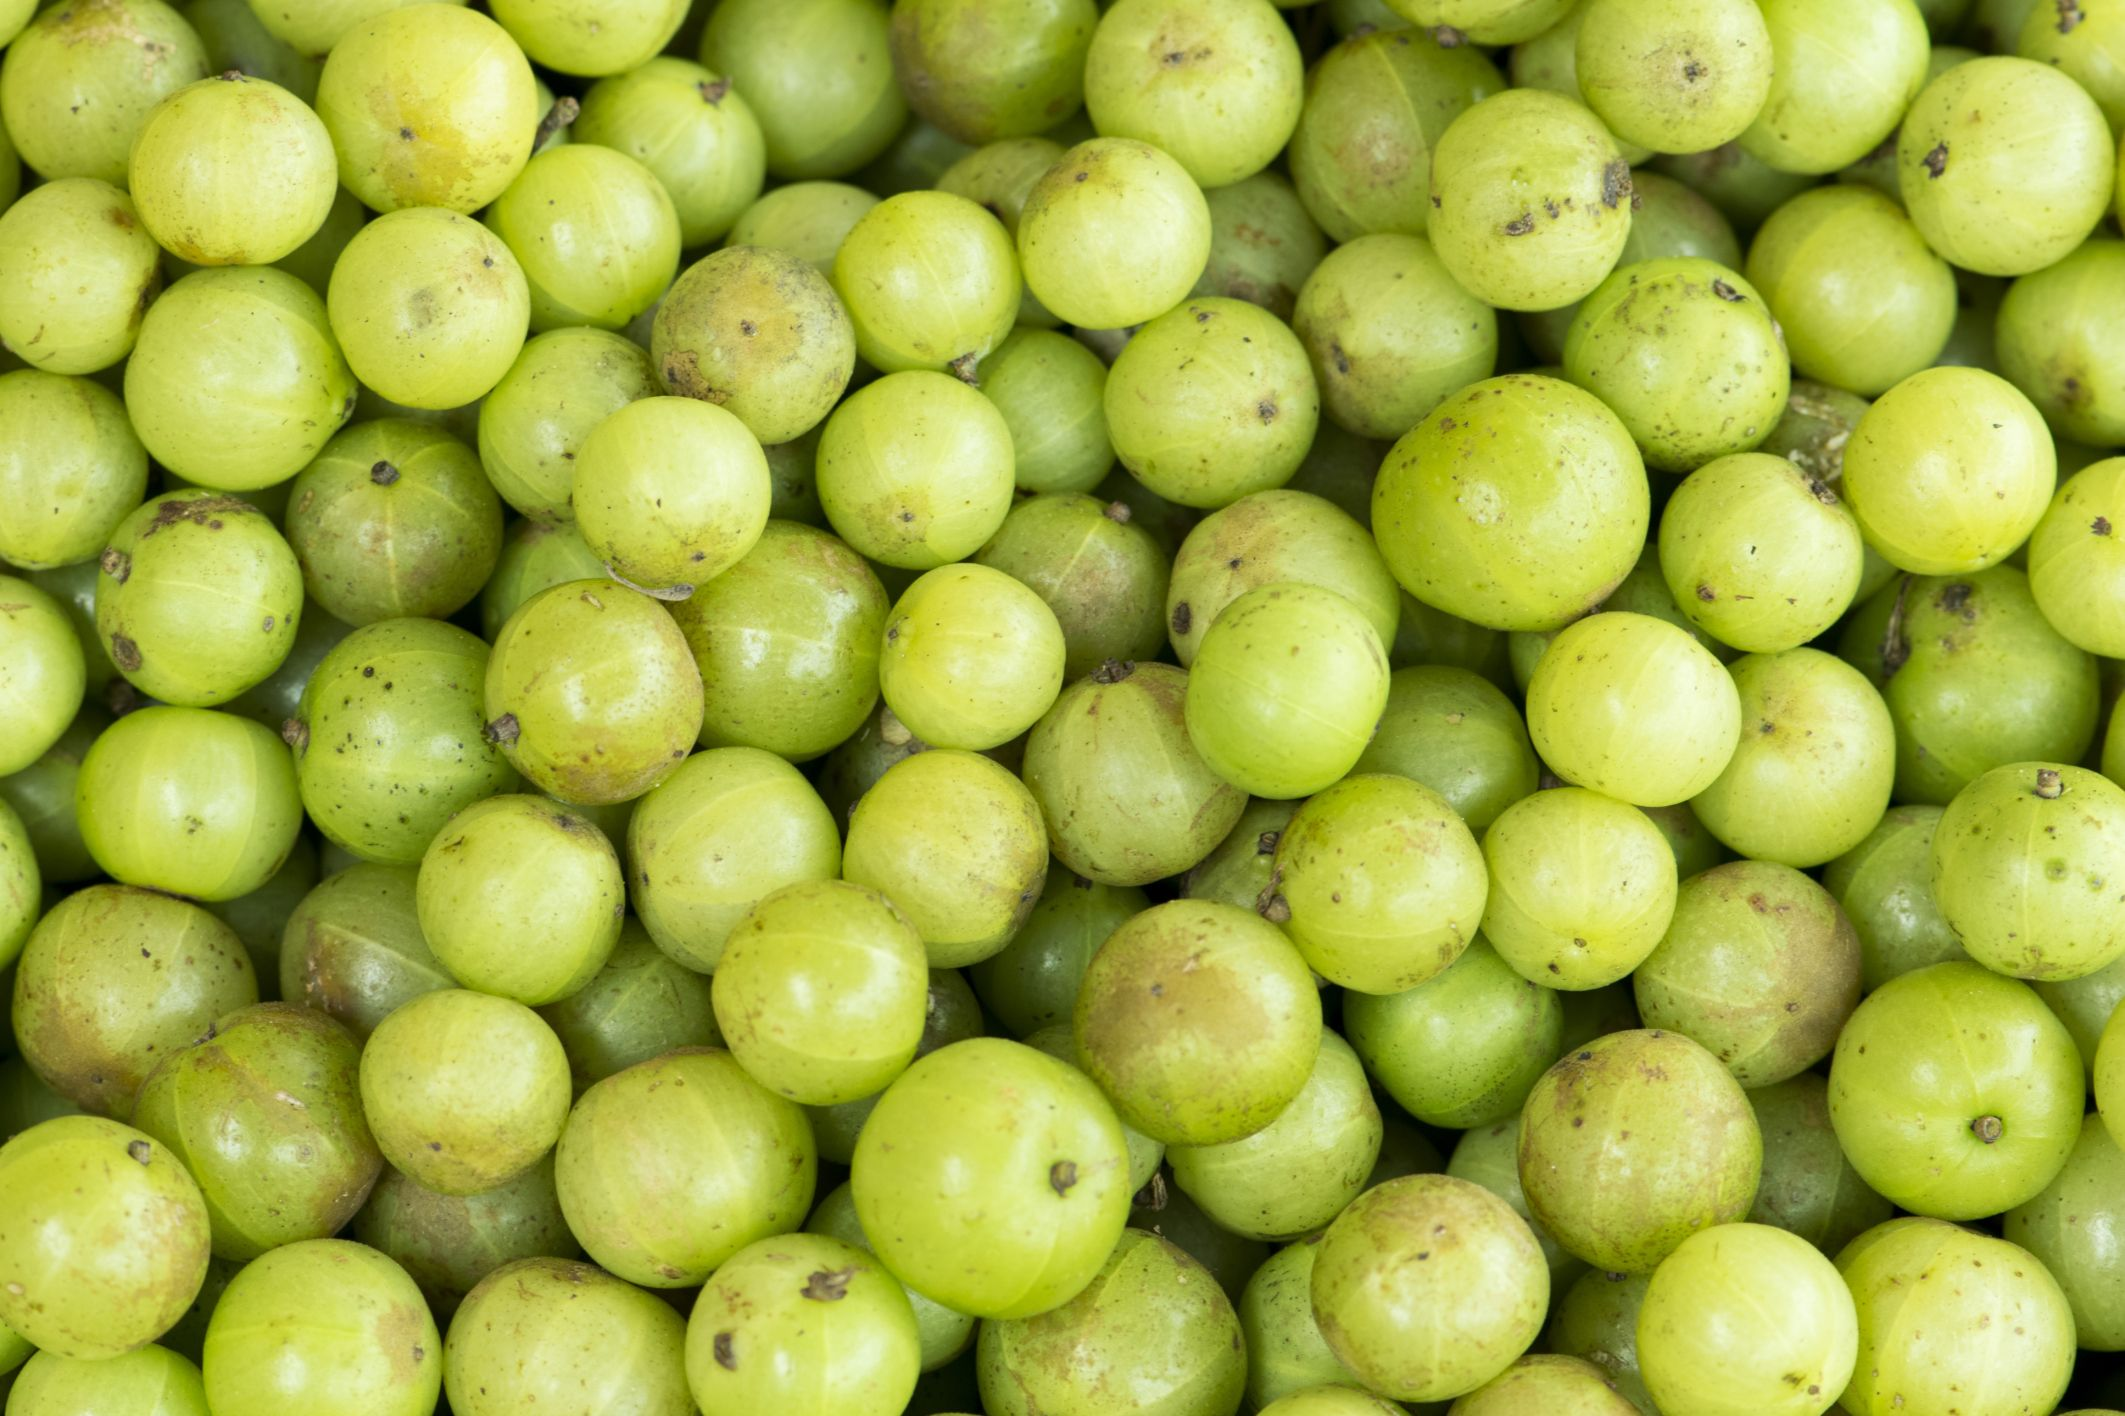 background with fresh Indian gooseberry in market | Fit tea, Apple images,  Design essentials